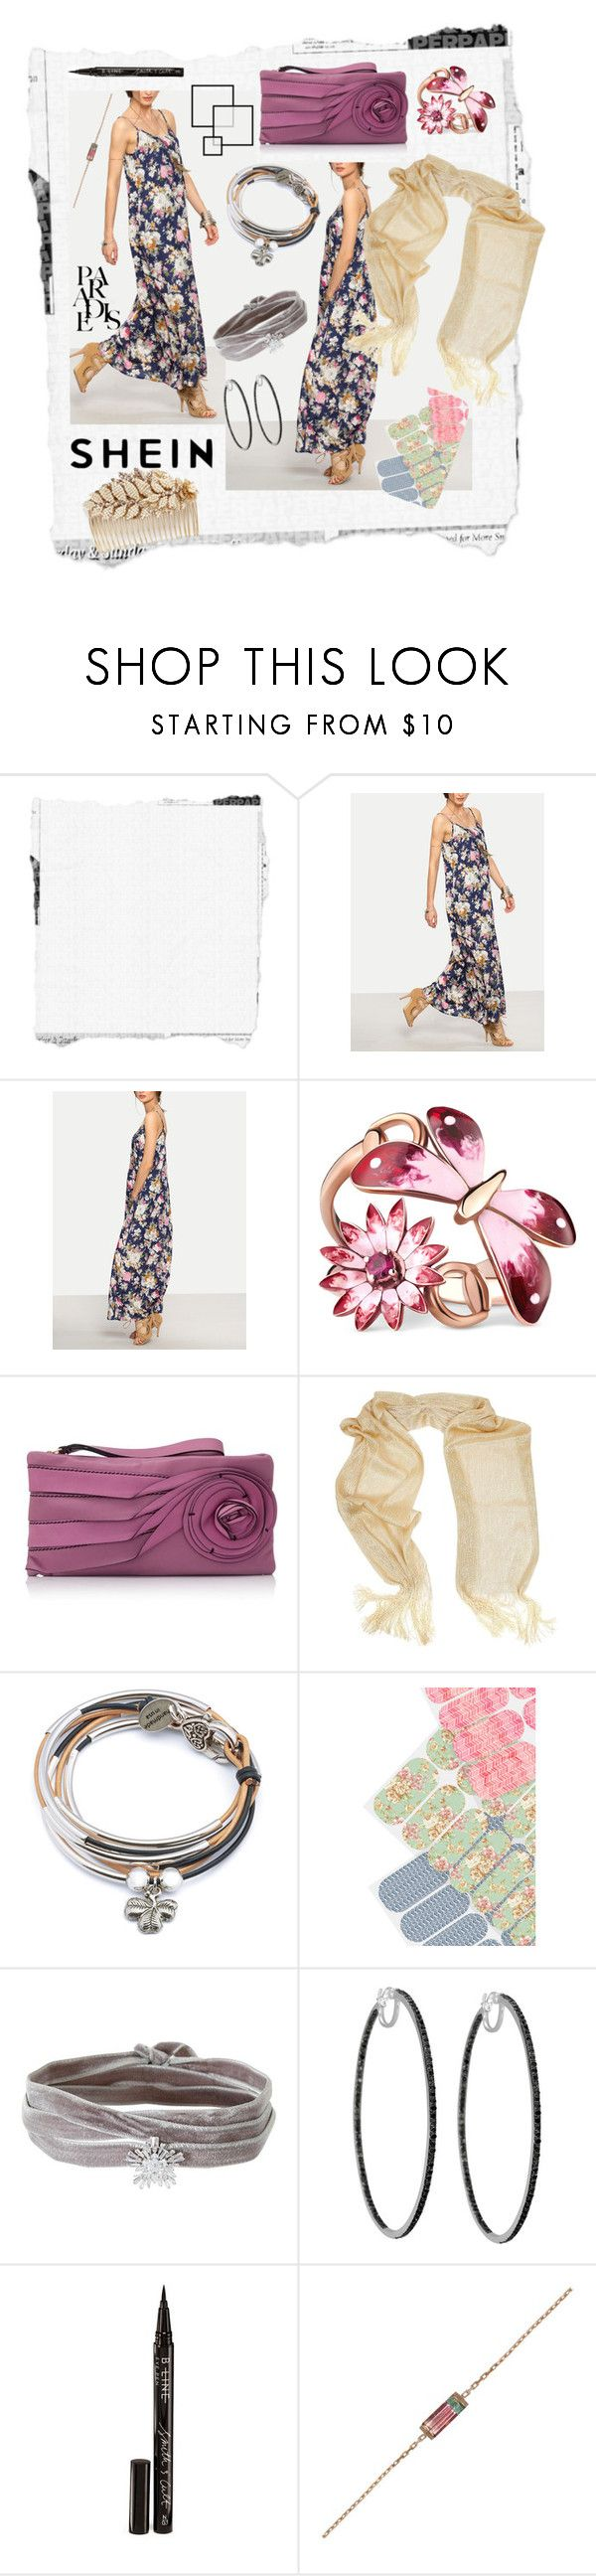 """Walking On Air 🎈"" by mavinex-de-nova ❤ liked on Polyvore featuring Gucci, Valentino, Lizzy James, Fallon, Smith & Cult and Miriam Haskell"